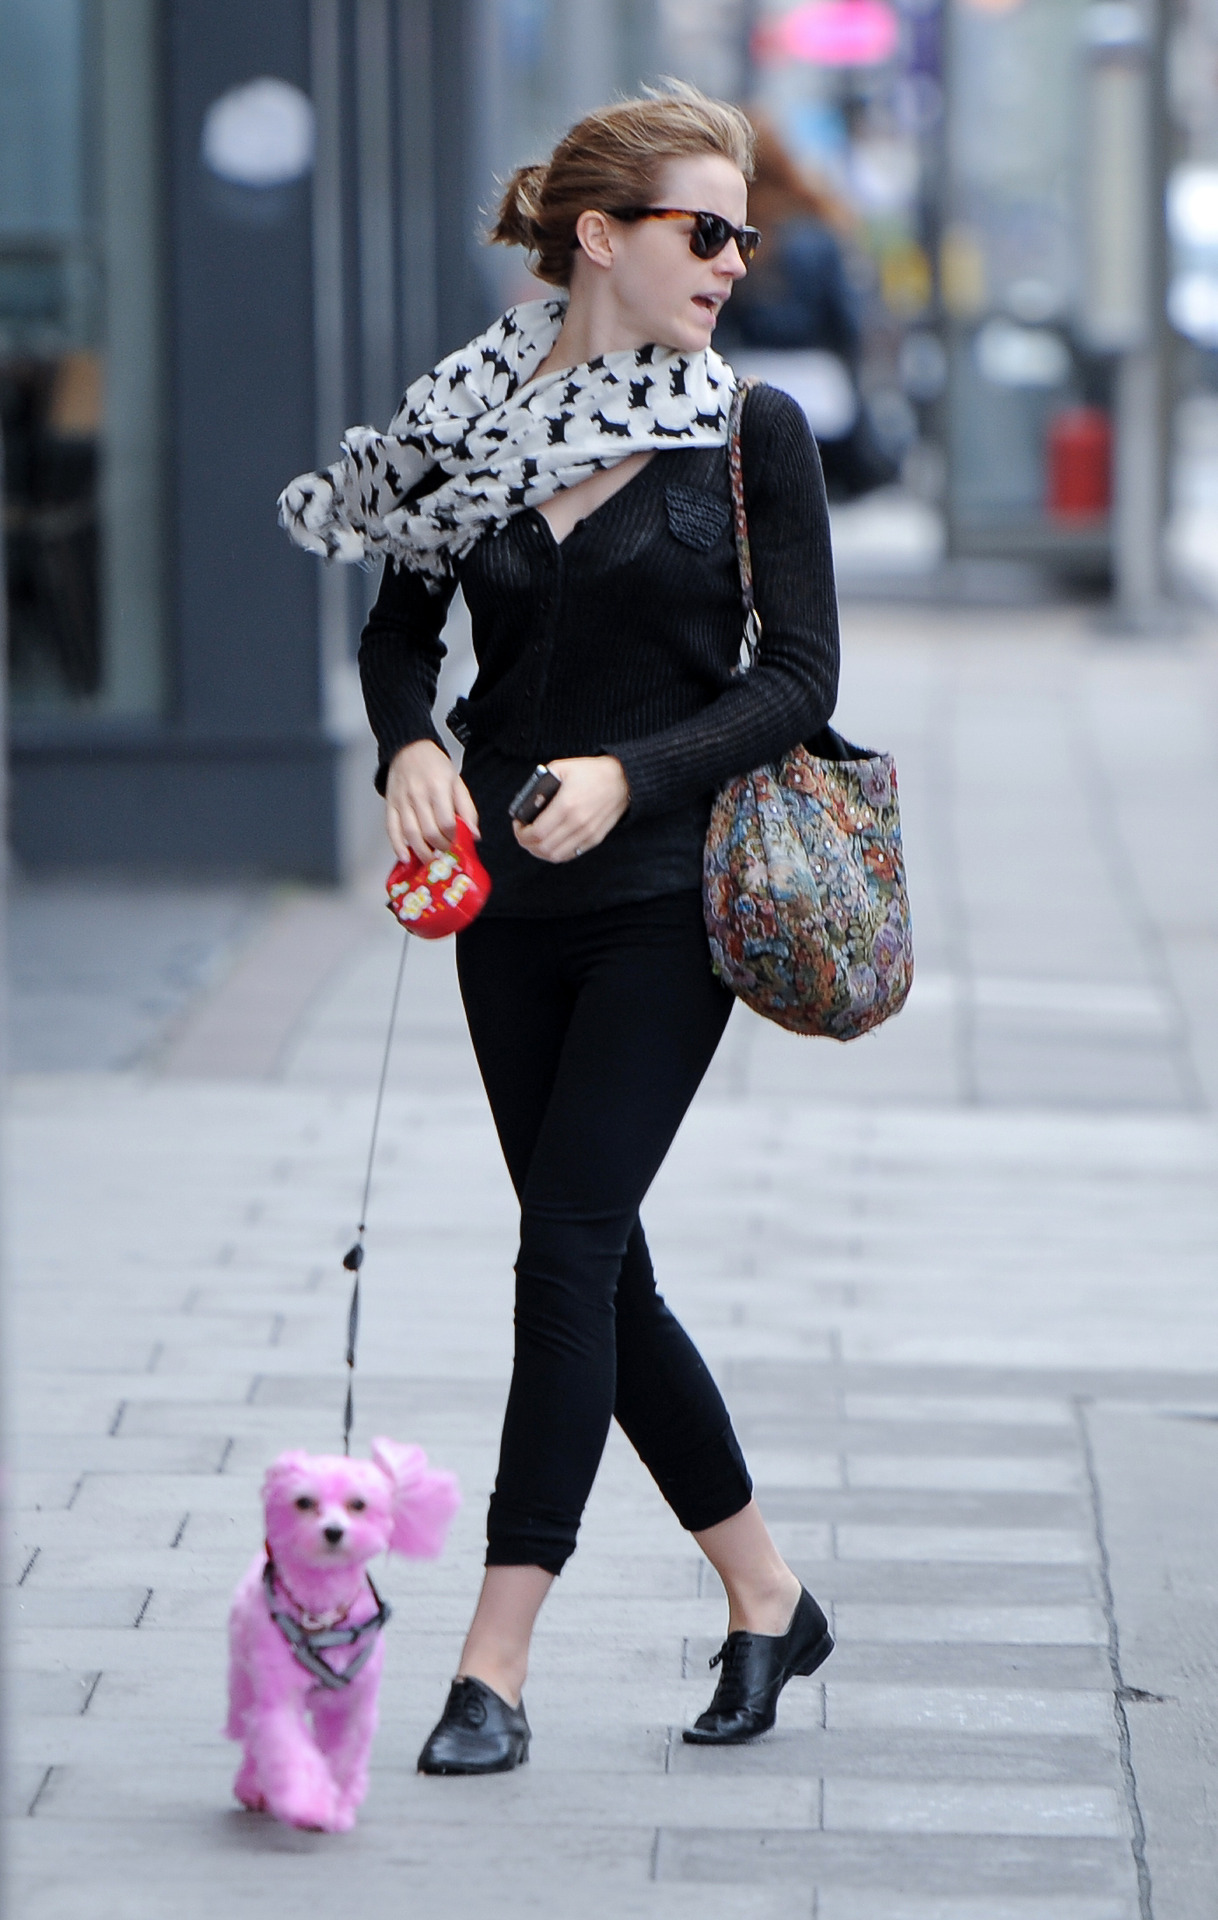 Emma Watson in East London, June 22nd EMMA WITH A PINK DOG!?    That's it, shut down the internet, we're all done here.